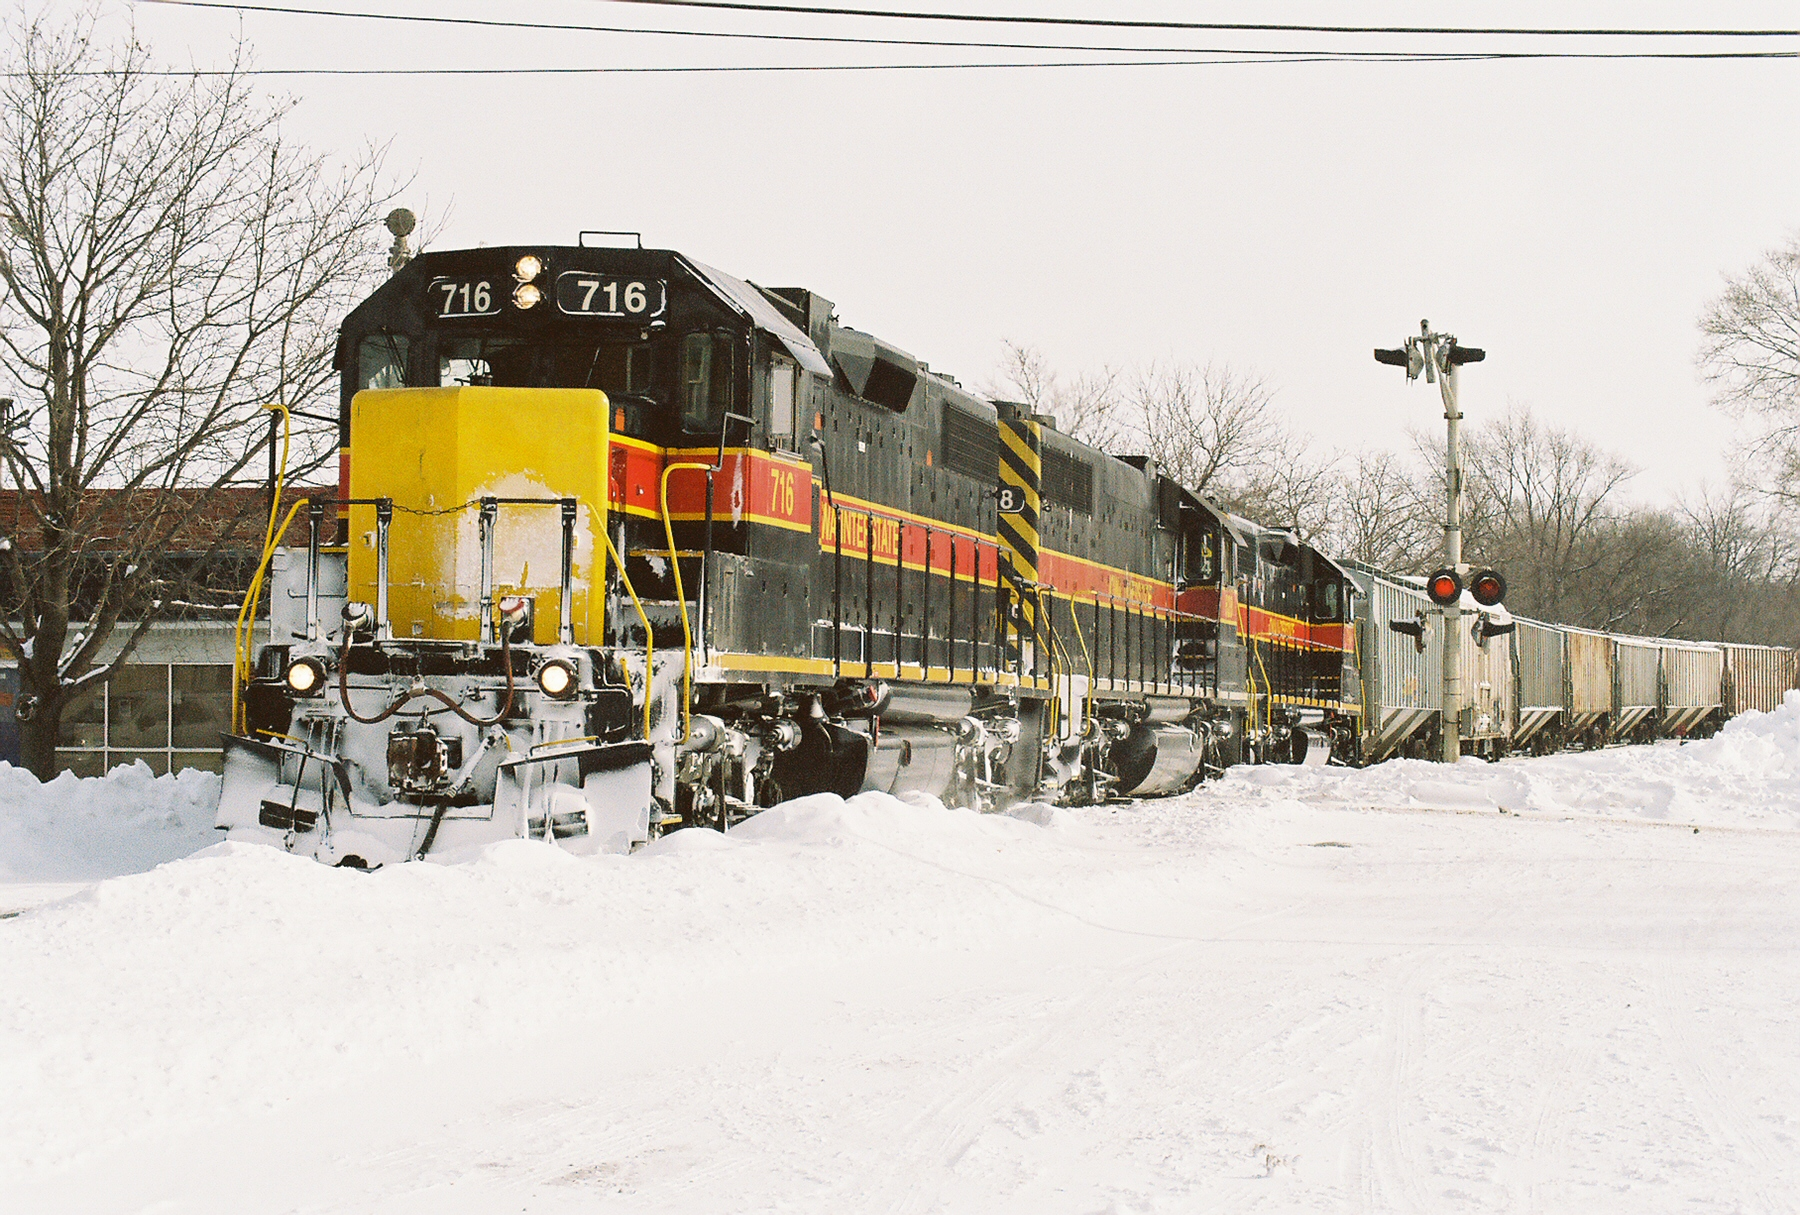 716 (minus it's IAIS emblem) pulls the BICB past the Rock Island depot in Iowa City on a snowy early January 2008 day.